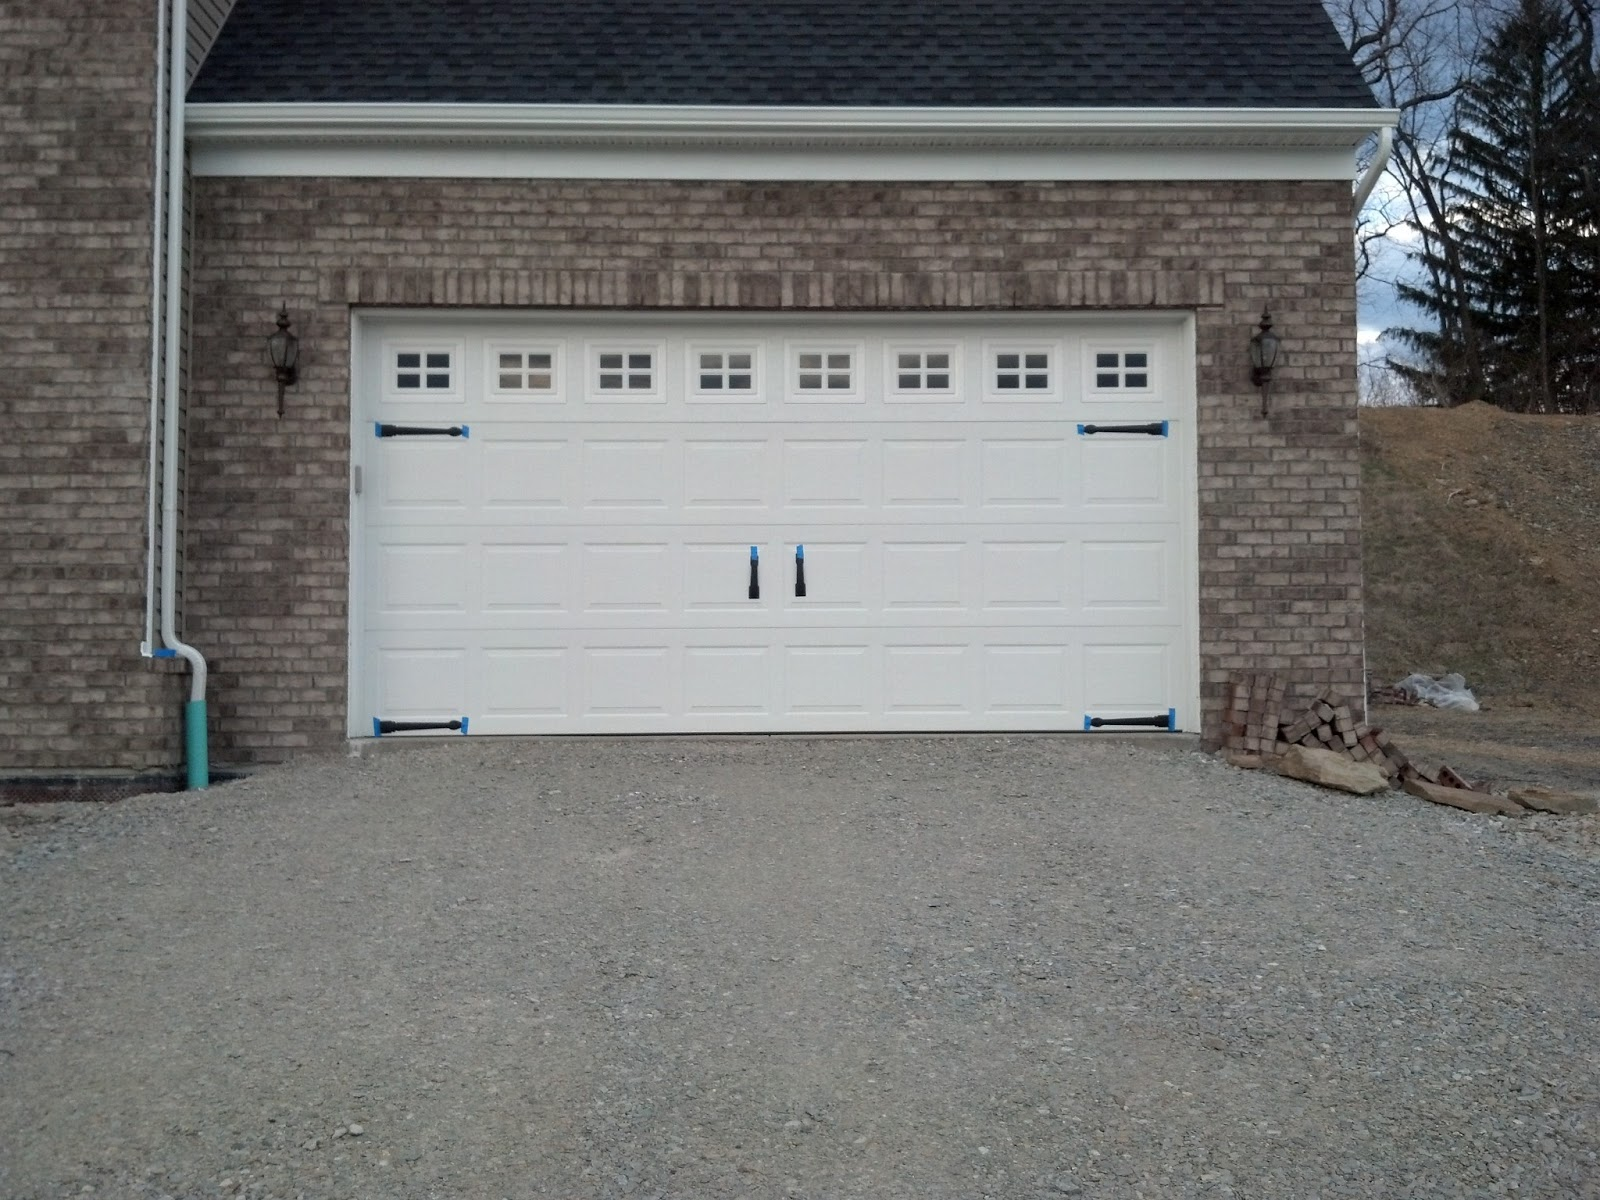 Savoy ryan home shutters vs no shutters garage for Home hardware garages